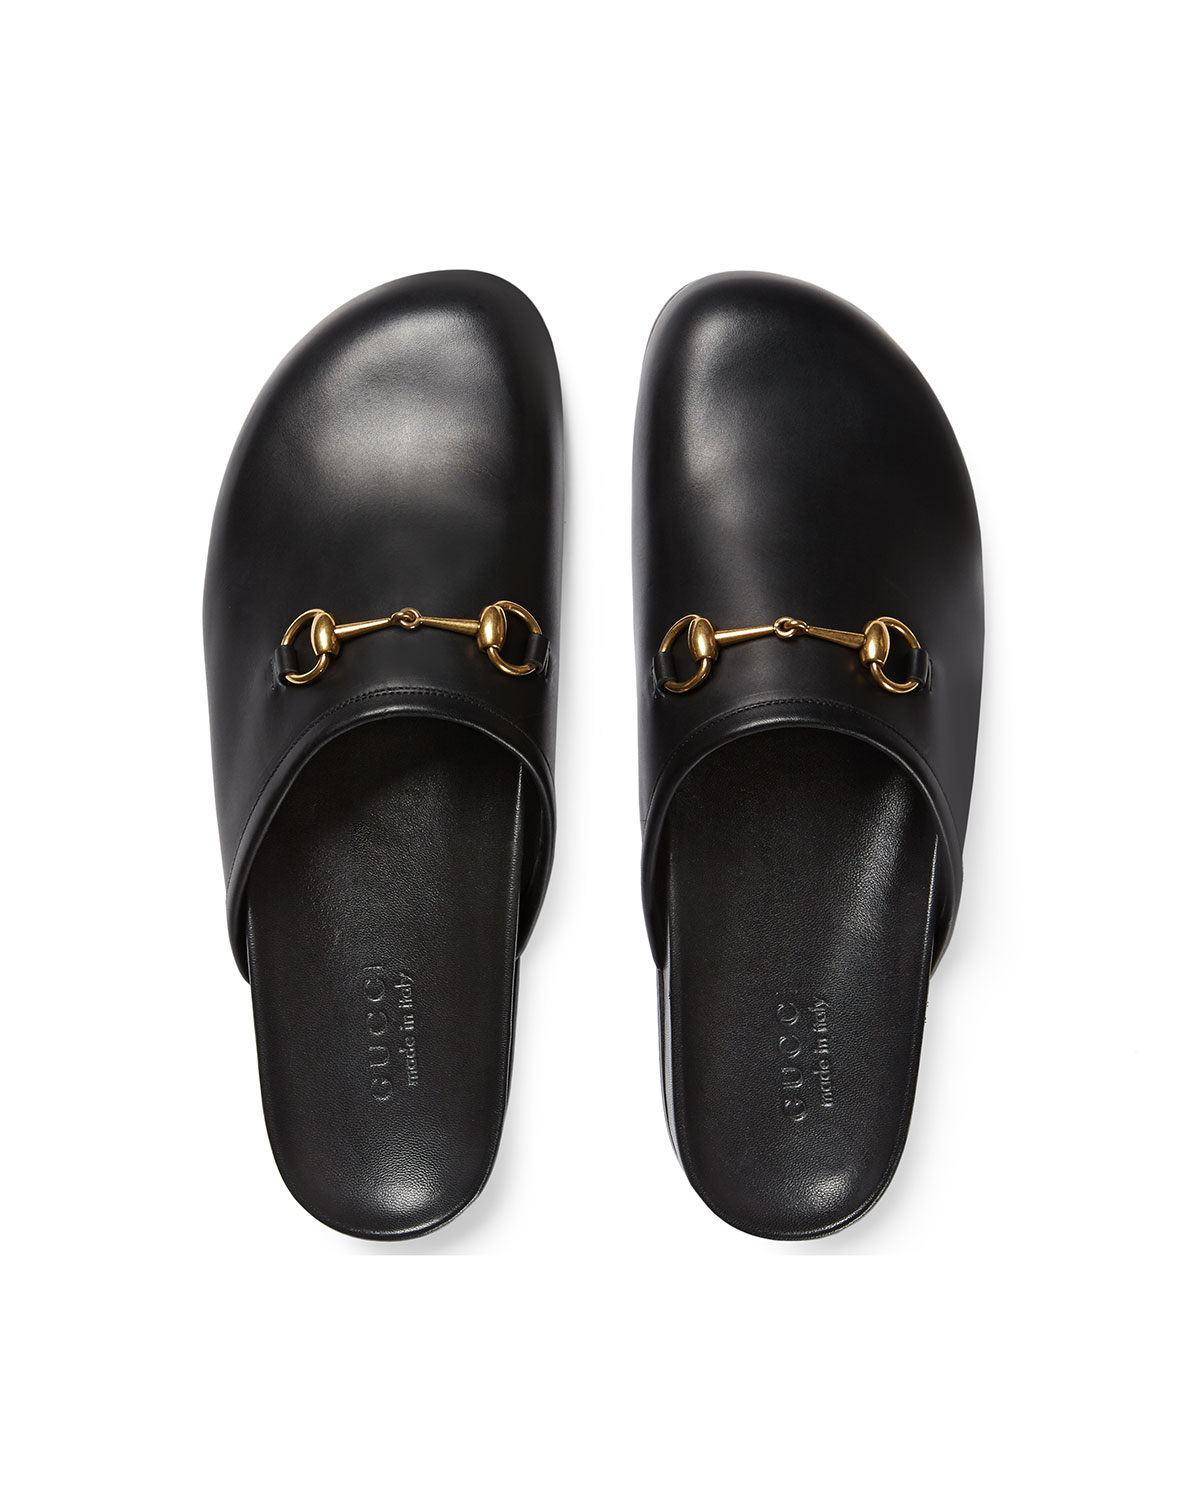 972081b77 Gucci Horsebit Leather Slipper, Black | Neiman Marcus